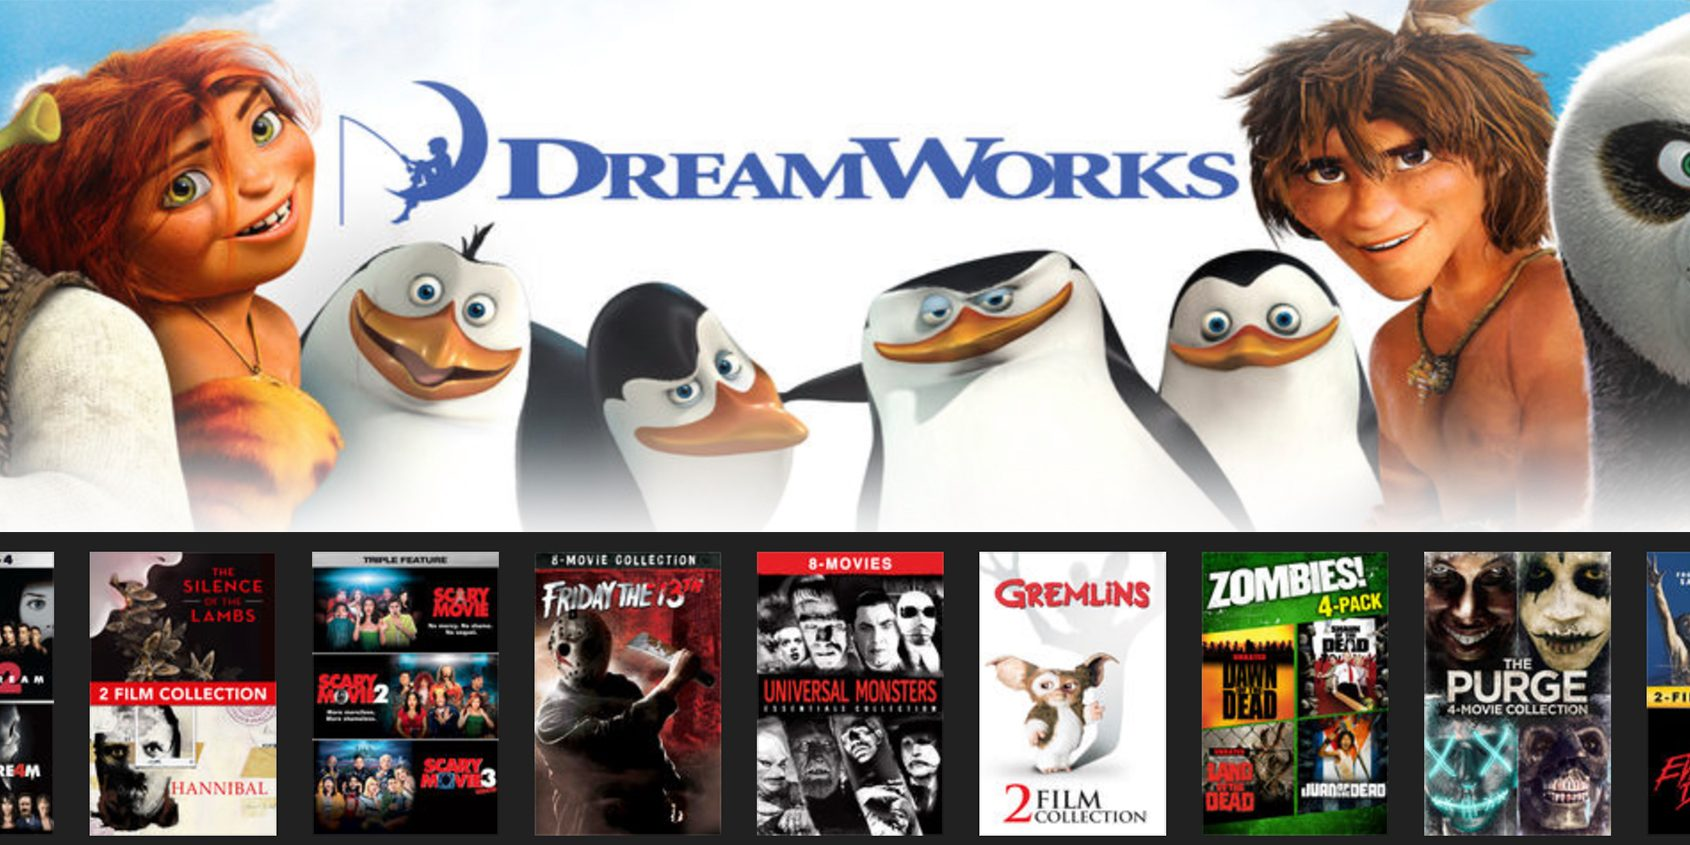 itunes kicks off movie bundle sale from 10 plus dreamworks films 8 4k from 5 more